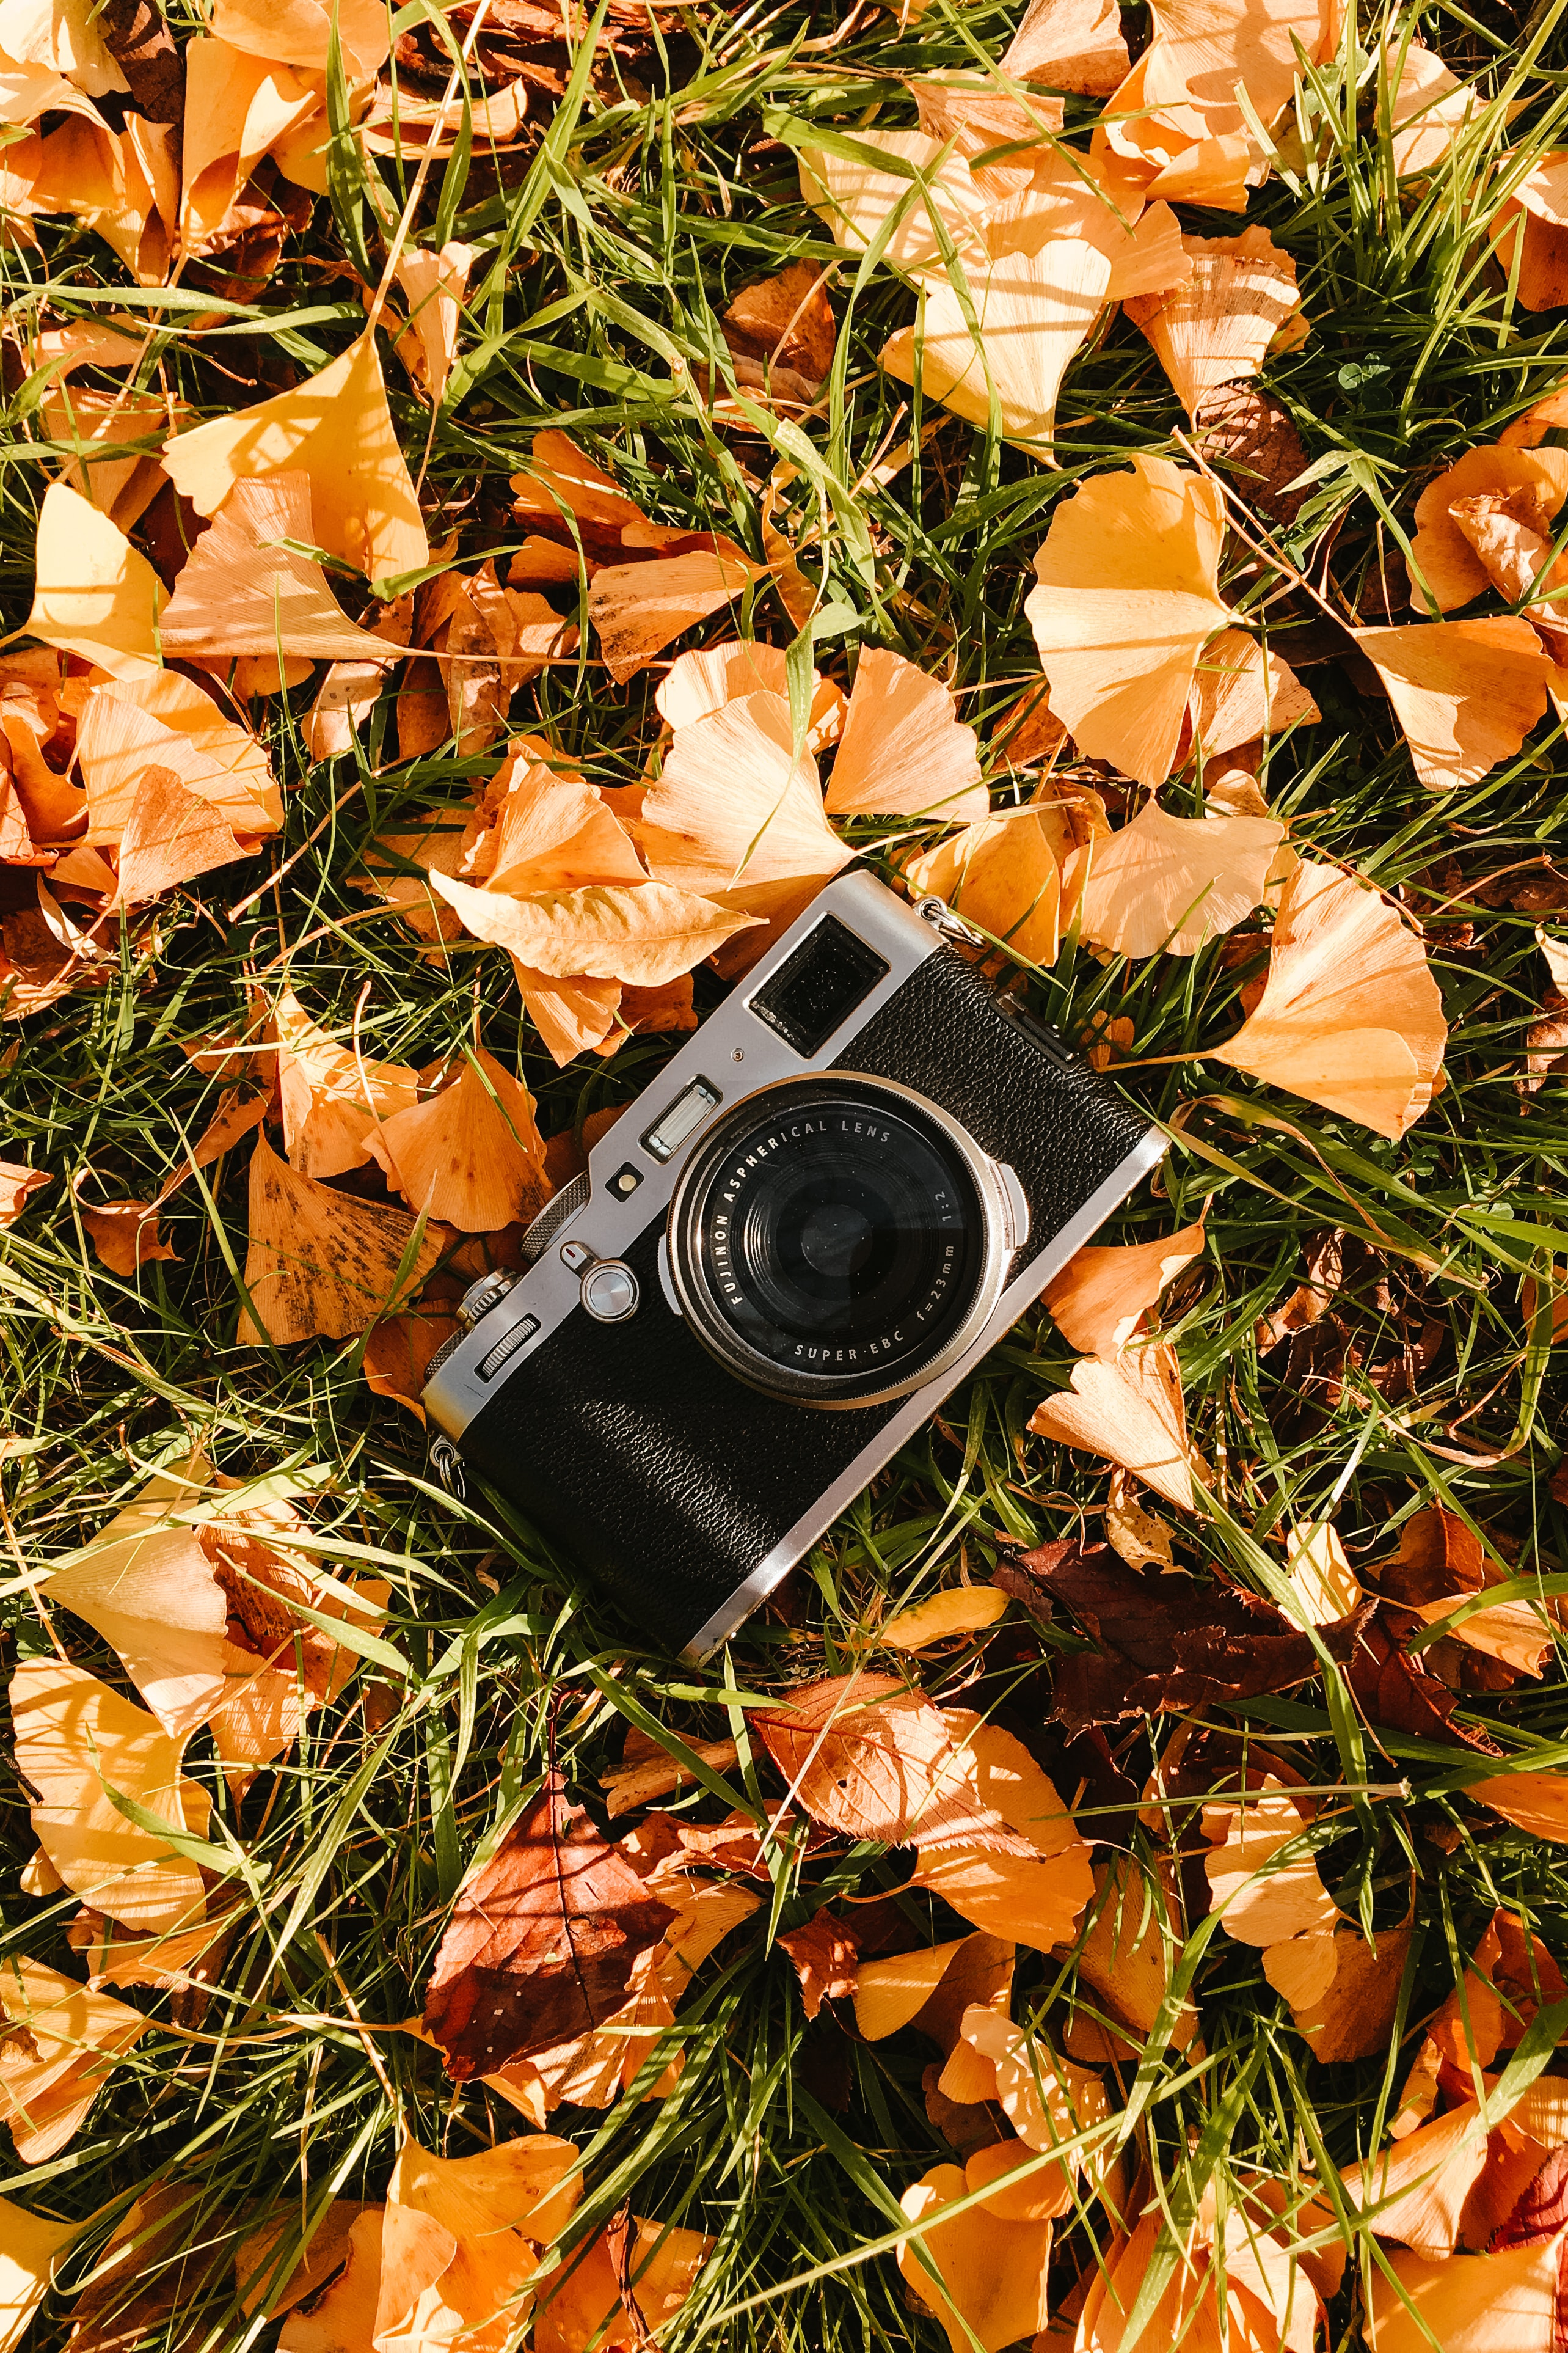 144080 download wallpaper Technology, Grass, Leaves, Technologies, Camera screensavers and pictures for free